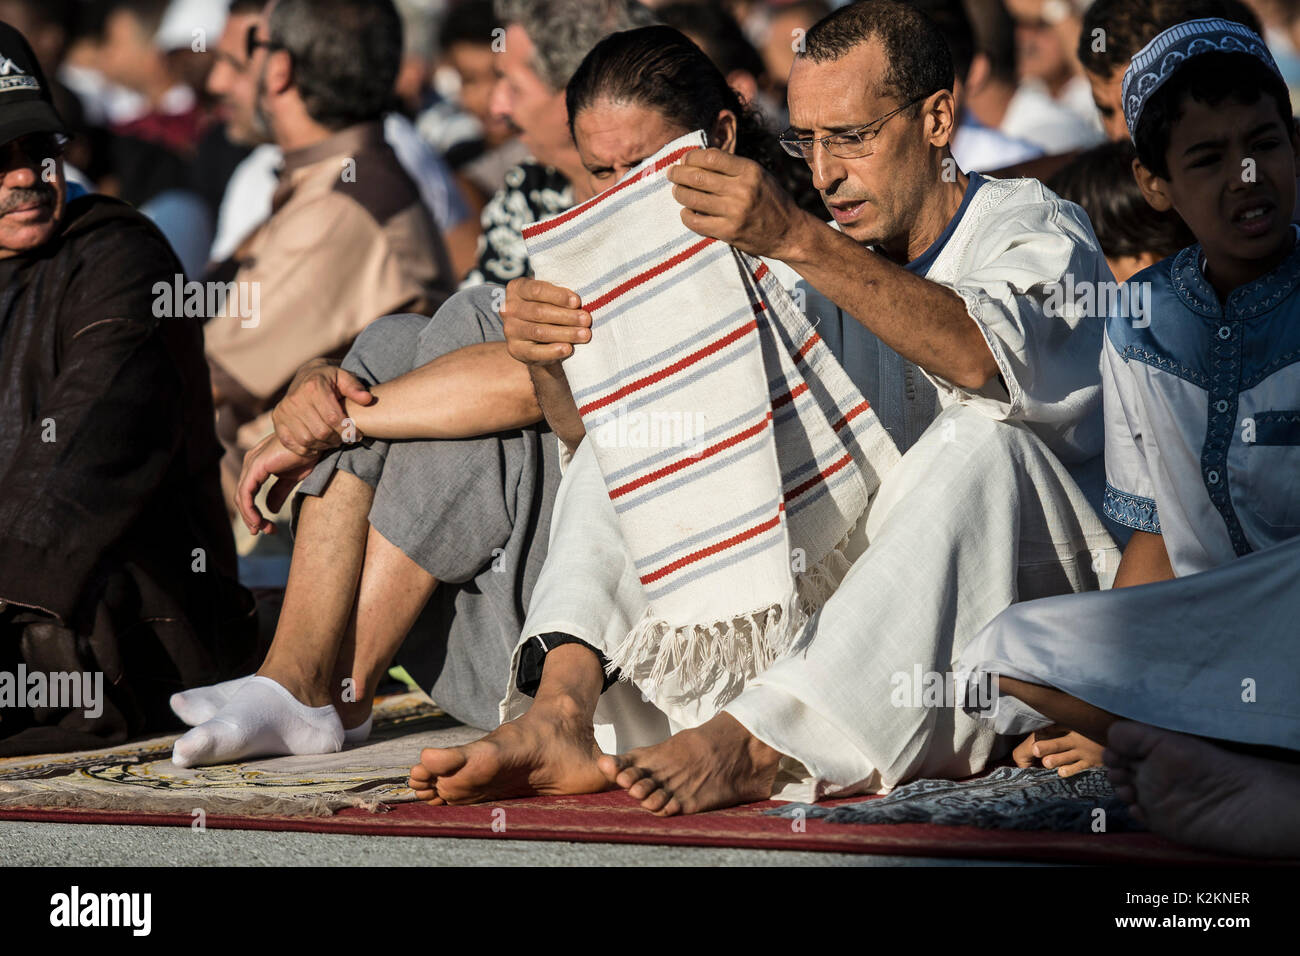 Turin, Piedmont, Italy. 1st Sep, 2017. Turin, Italy - September 1, 2017: Islamic Sacrifice Festival at Dora Park Stock Photo